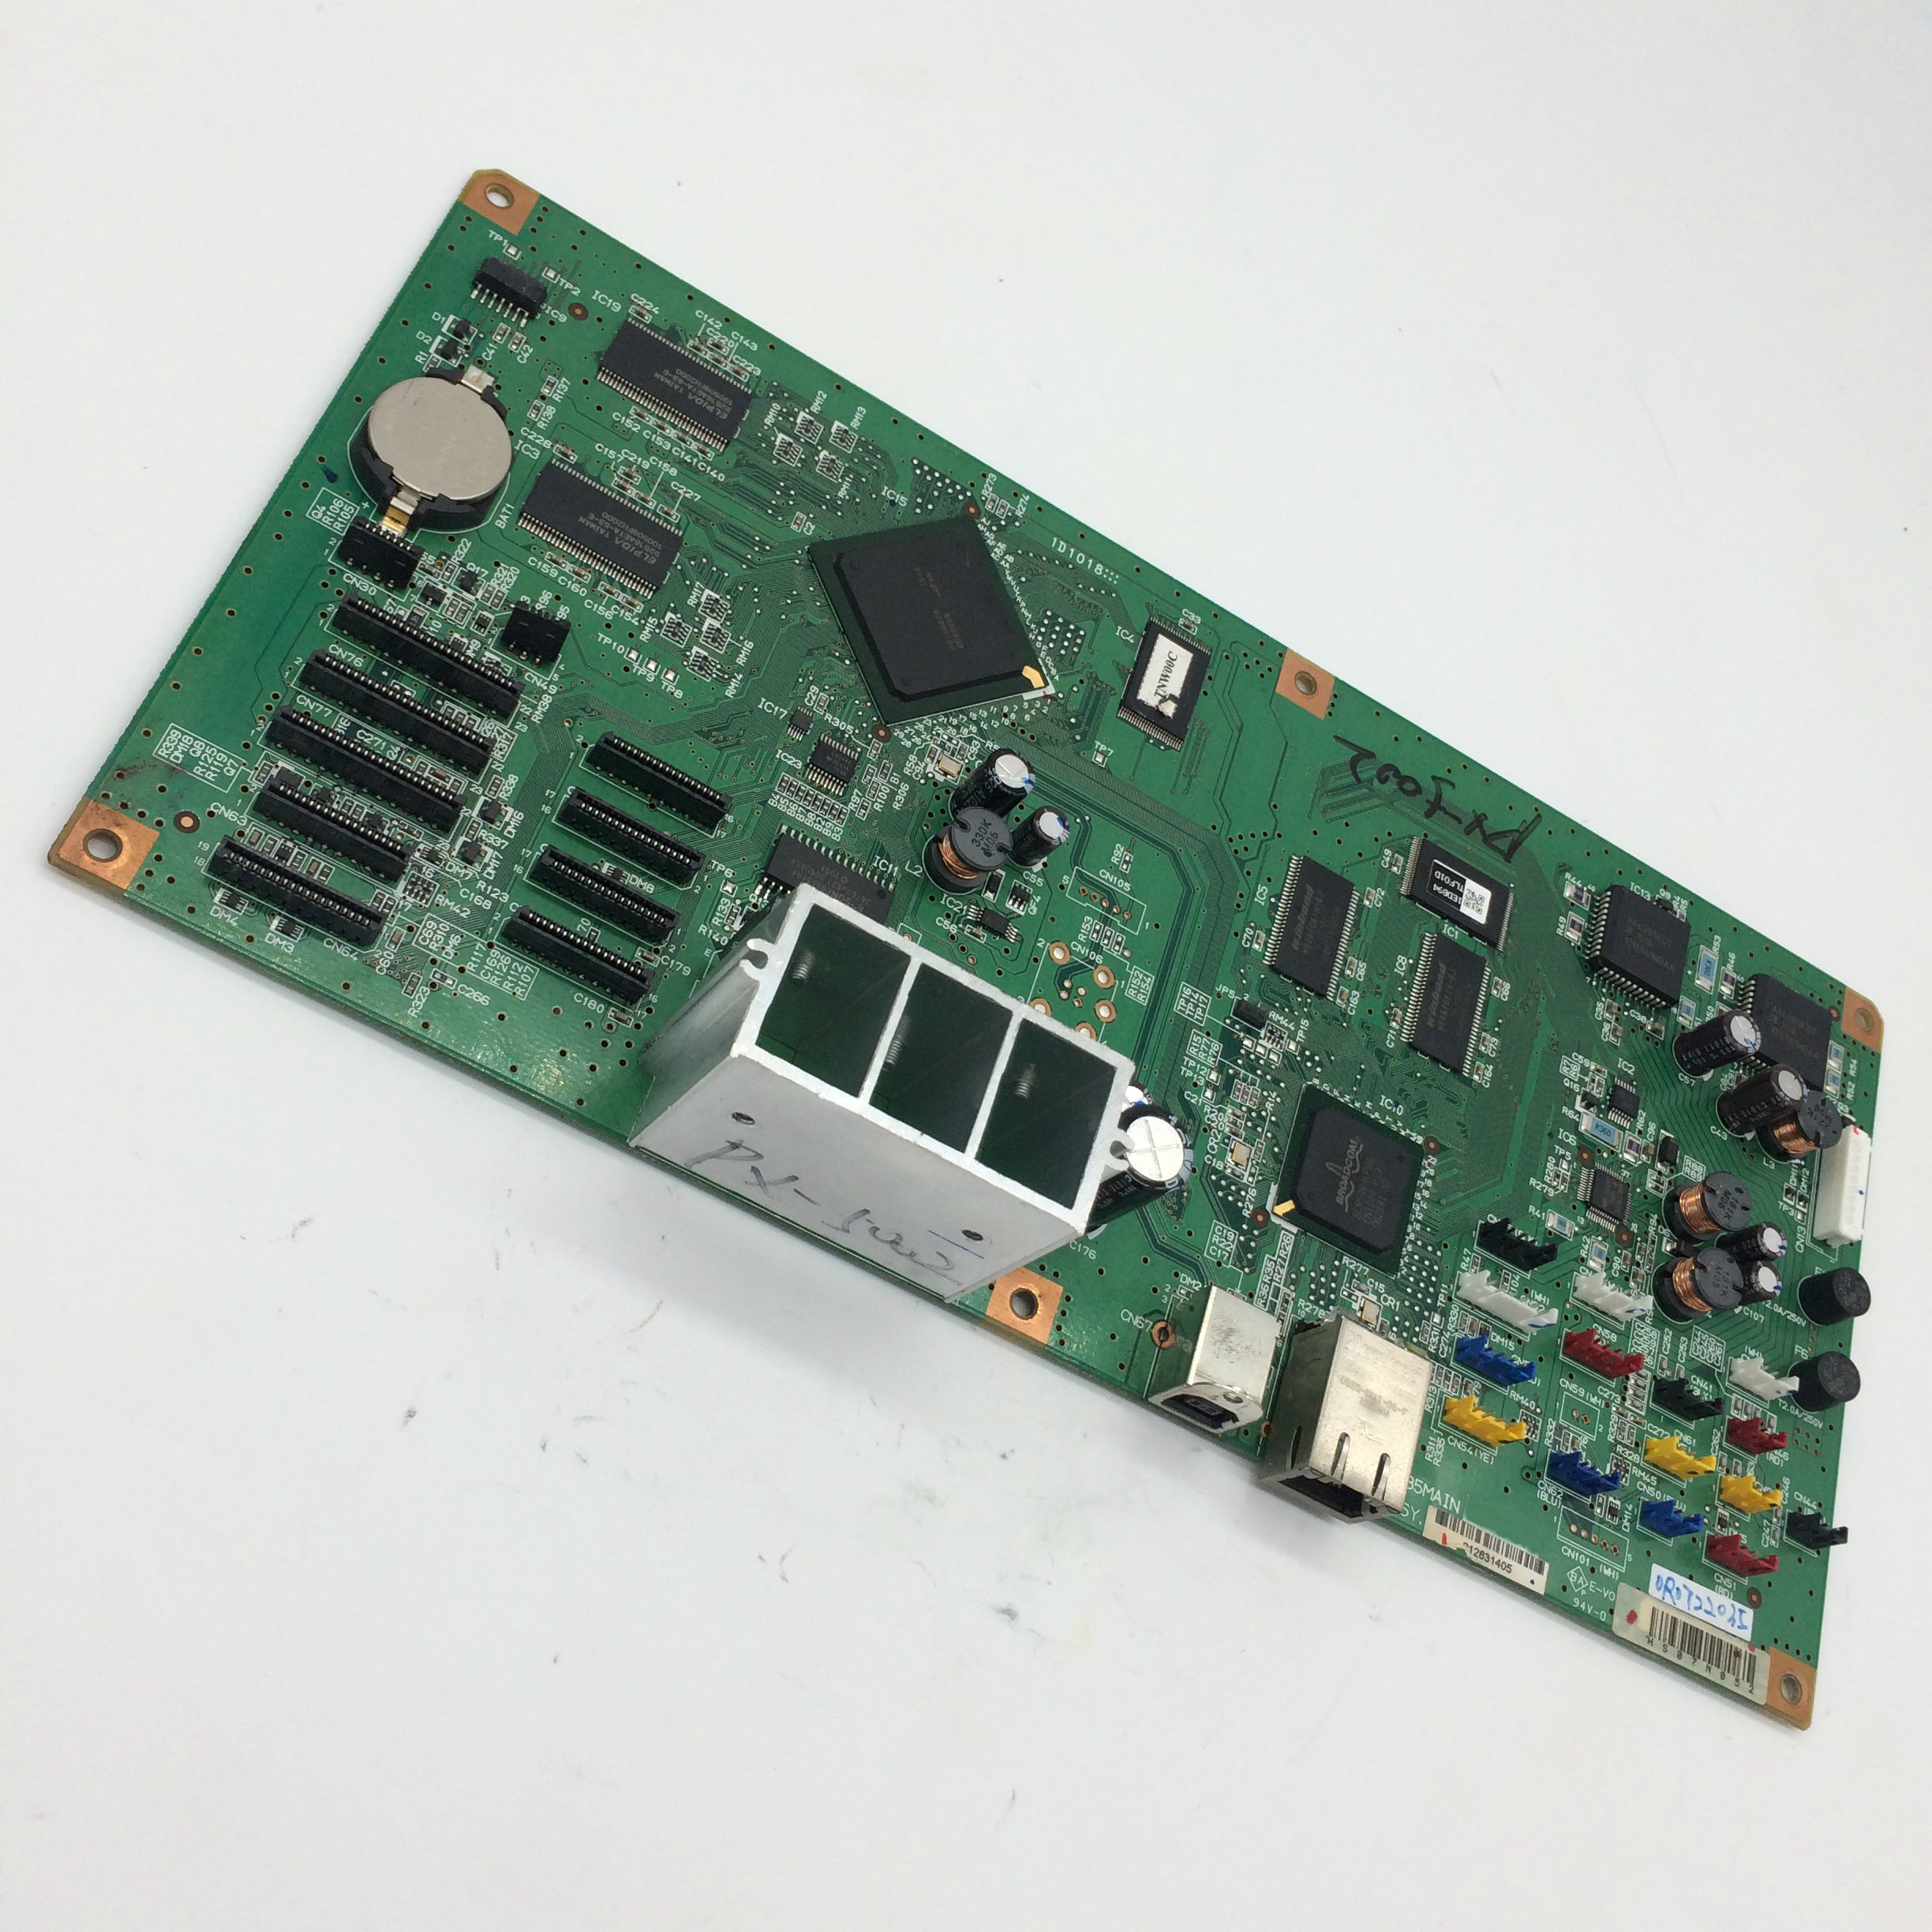 PRINTER MAIN BAORD C635 MAIN FOR EPSON PX-5002 PRINTER printer main baord c635 main for epson pro 3800 3880 3800c 3850 3890 printer